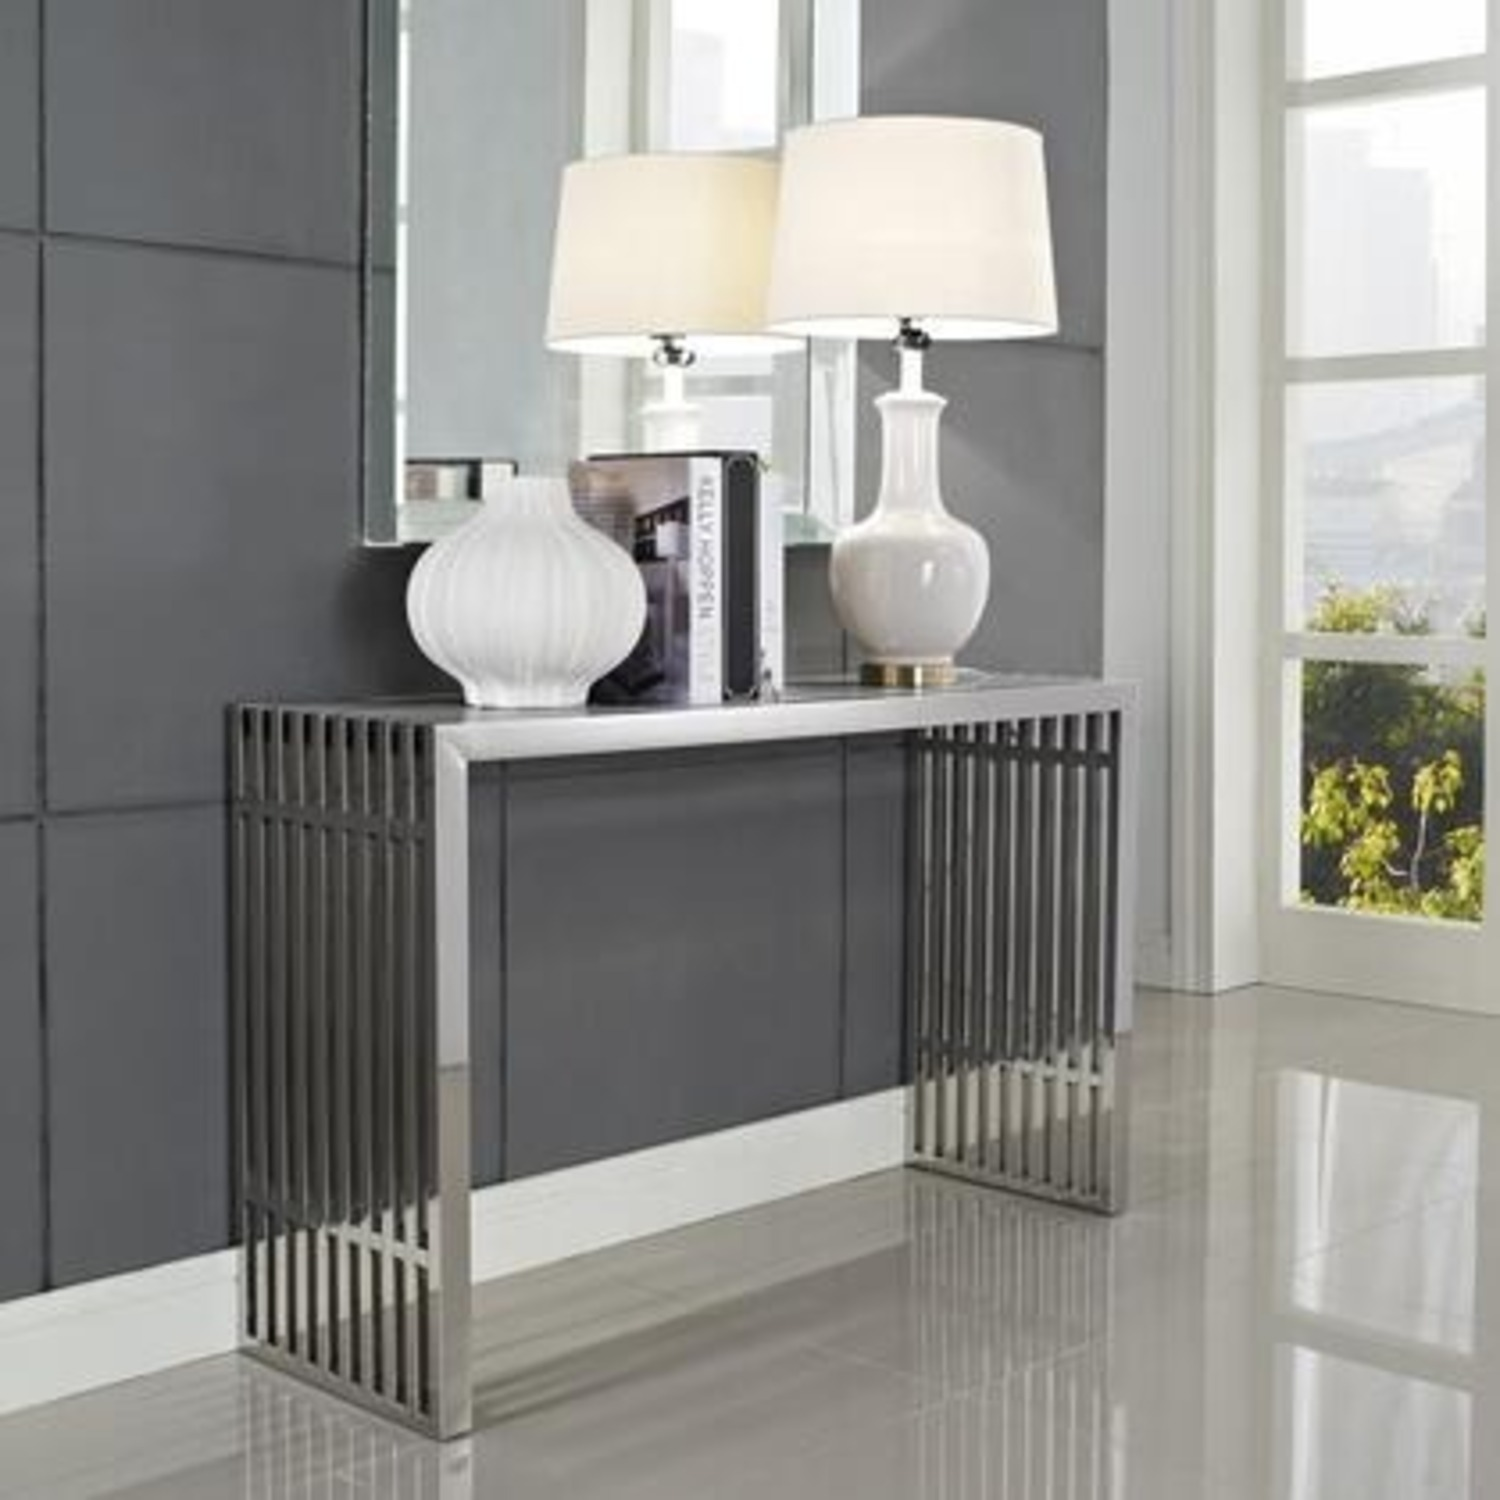 Modern Console Table In Silver Stainless Finish - image-3